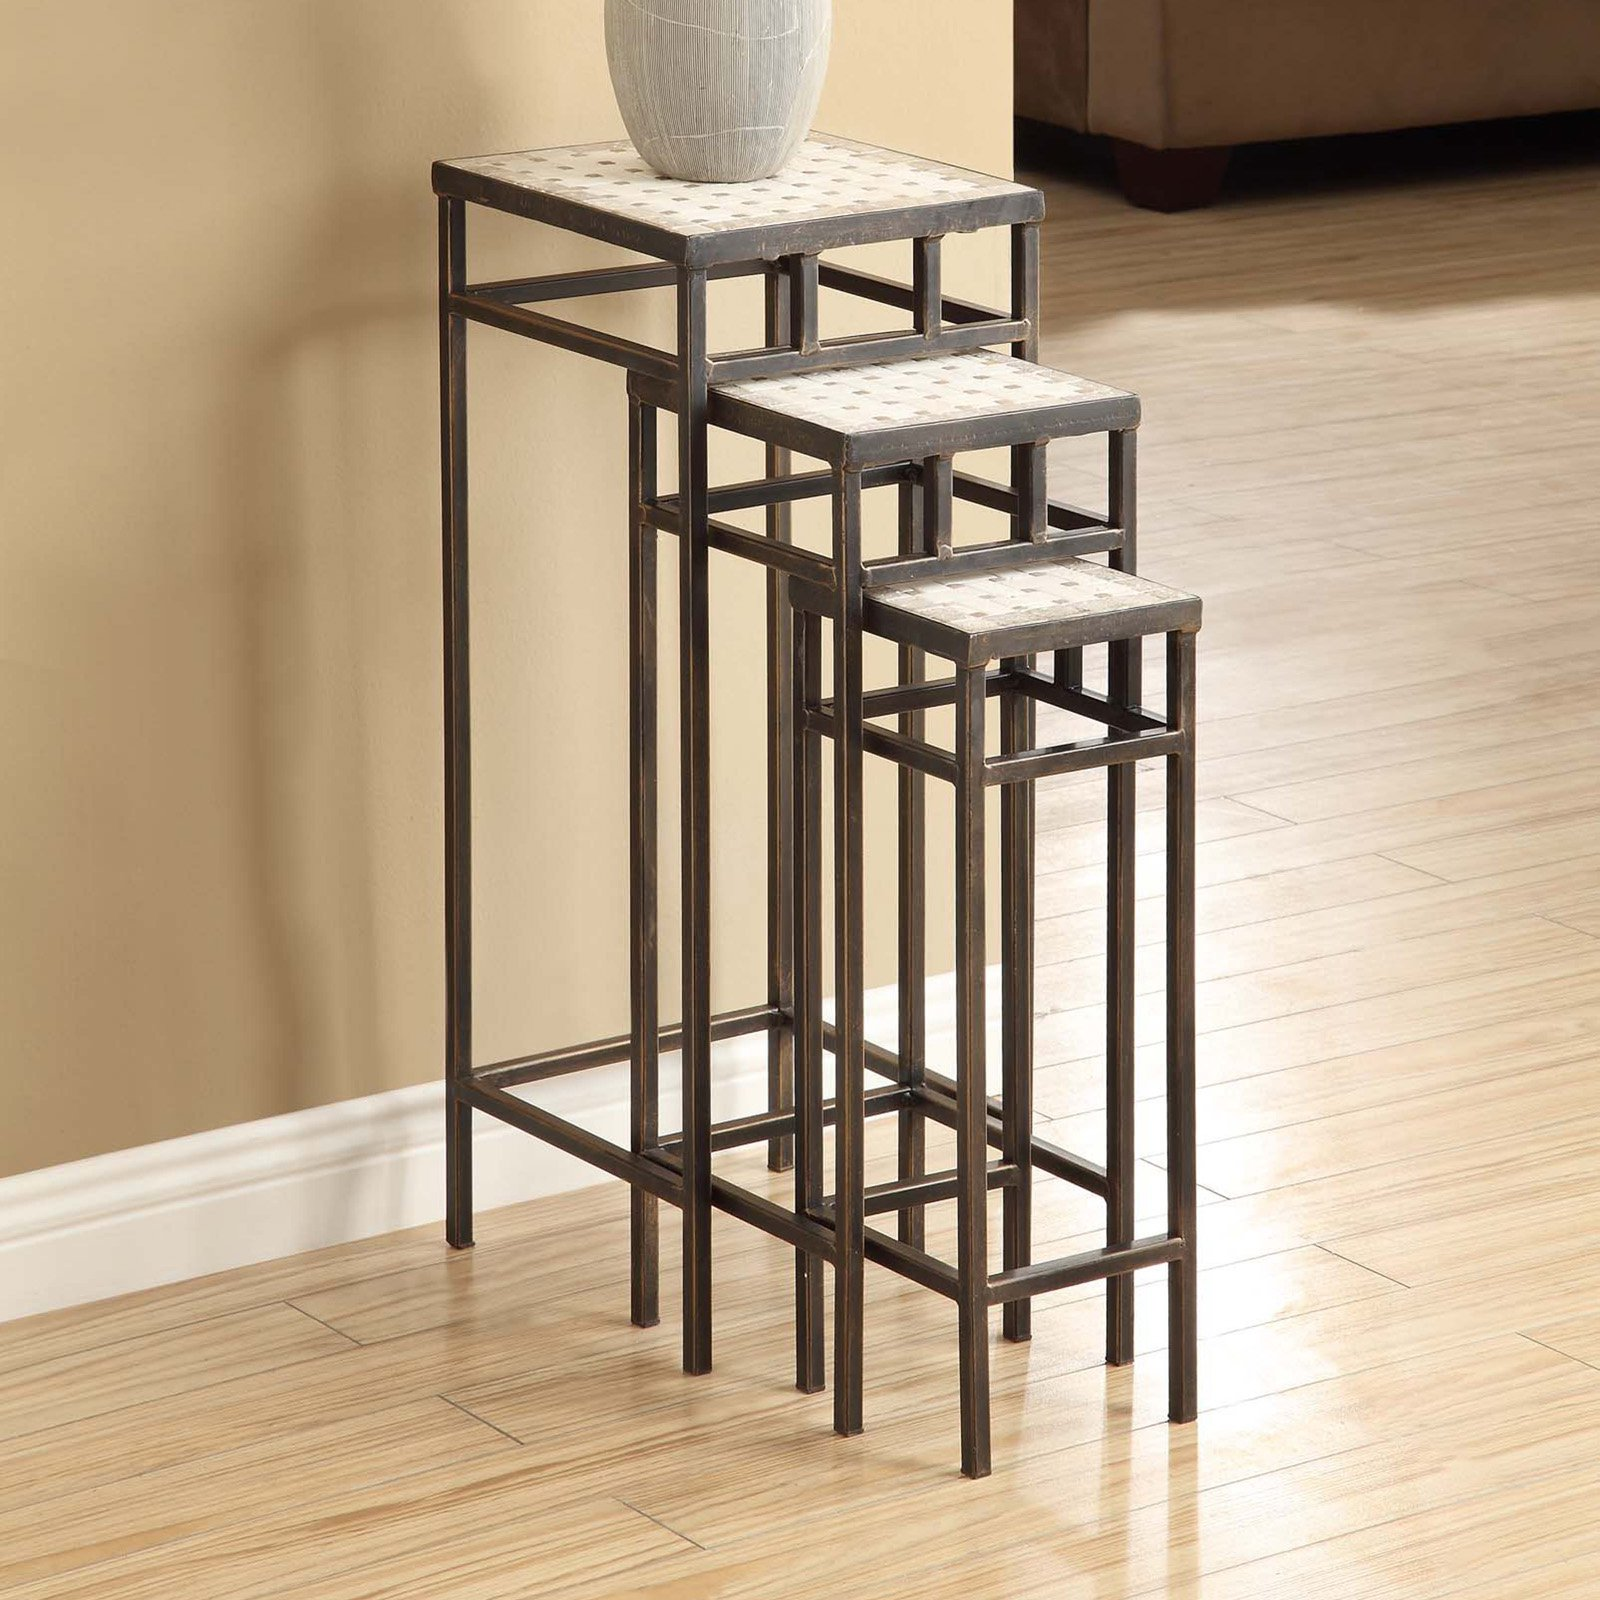 4D Concepts Slate Square Plant Stands with Travertine Tops Set of 3 by 4D Concepts